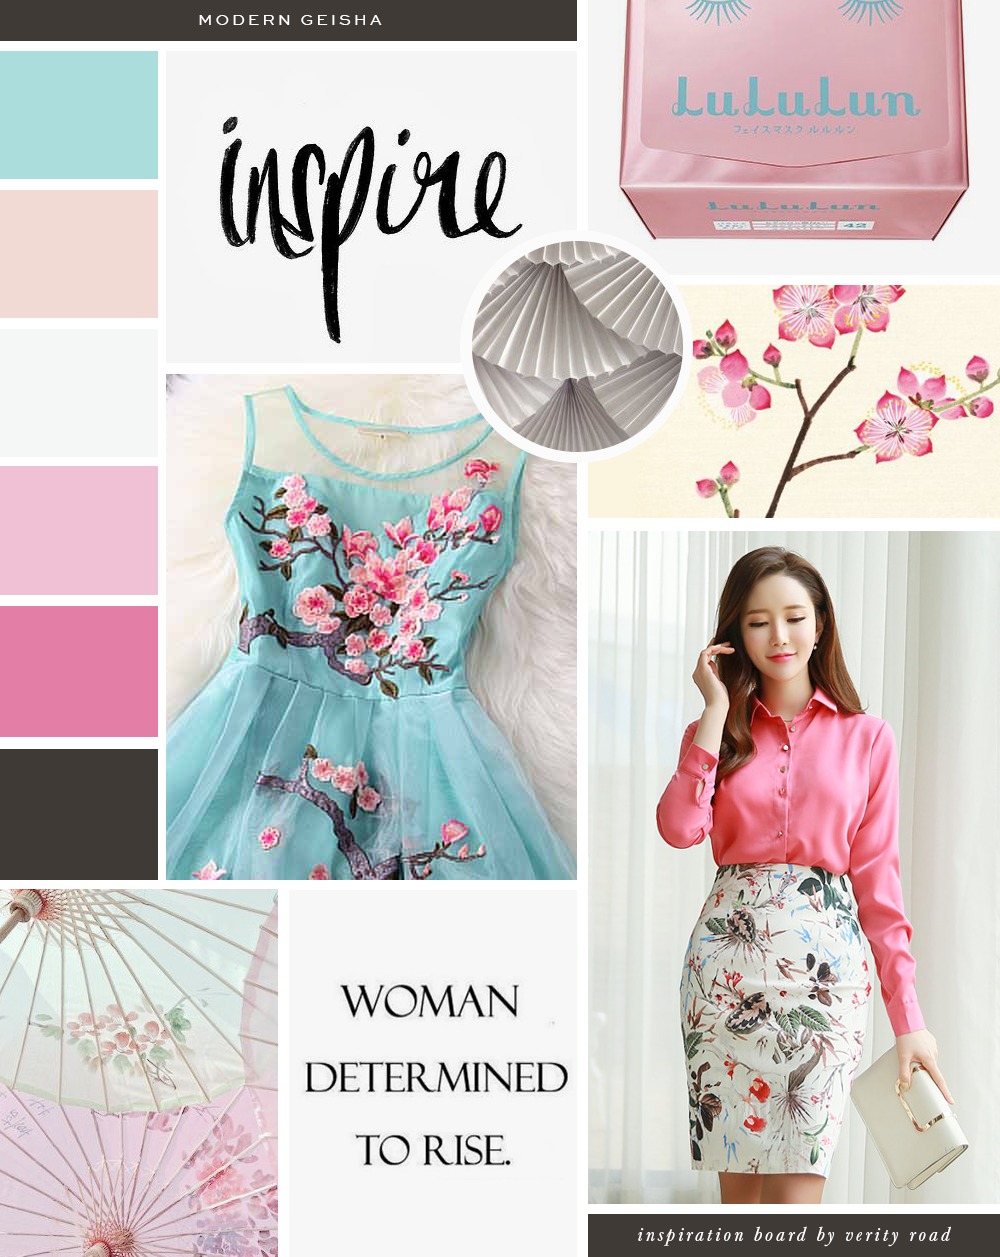 Mood board for modern geisha, feminine business, luxury feminine brand styling and web design for female entrepreneurs. Inspiration board of typography, brush script font, serif, brown, pink, blush, tiffany blue color palette, japanese fans, cherry blossom flowers, femininity, FLORAL pattern, business owner, blogger. See more for brand board, brand style guide, web design, social media branding.